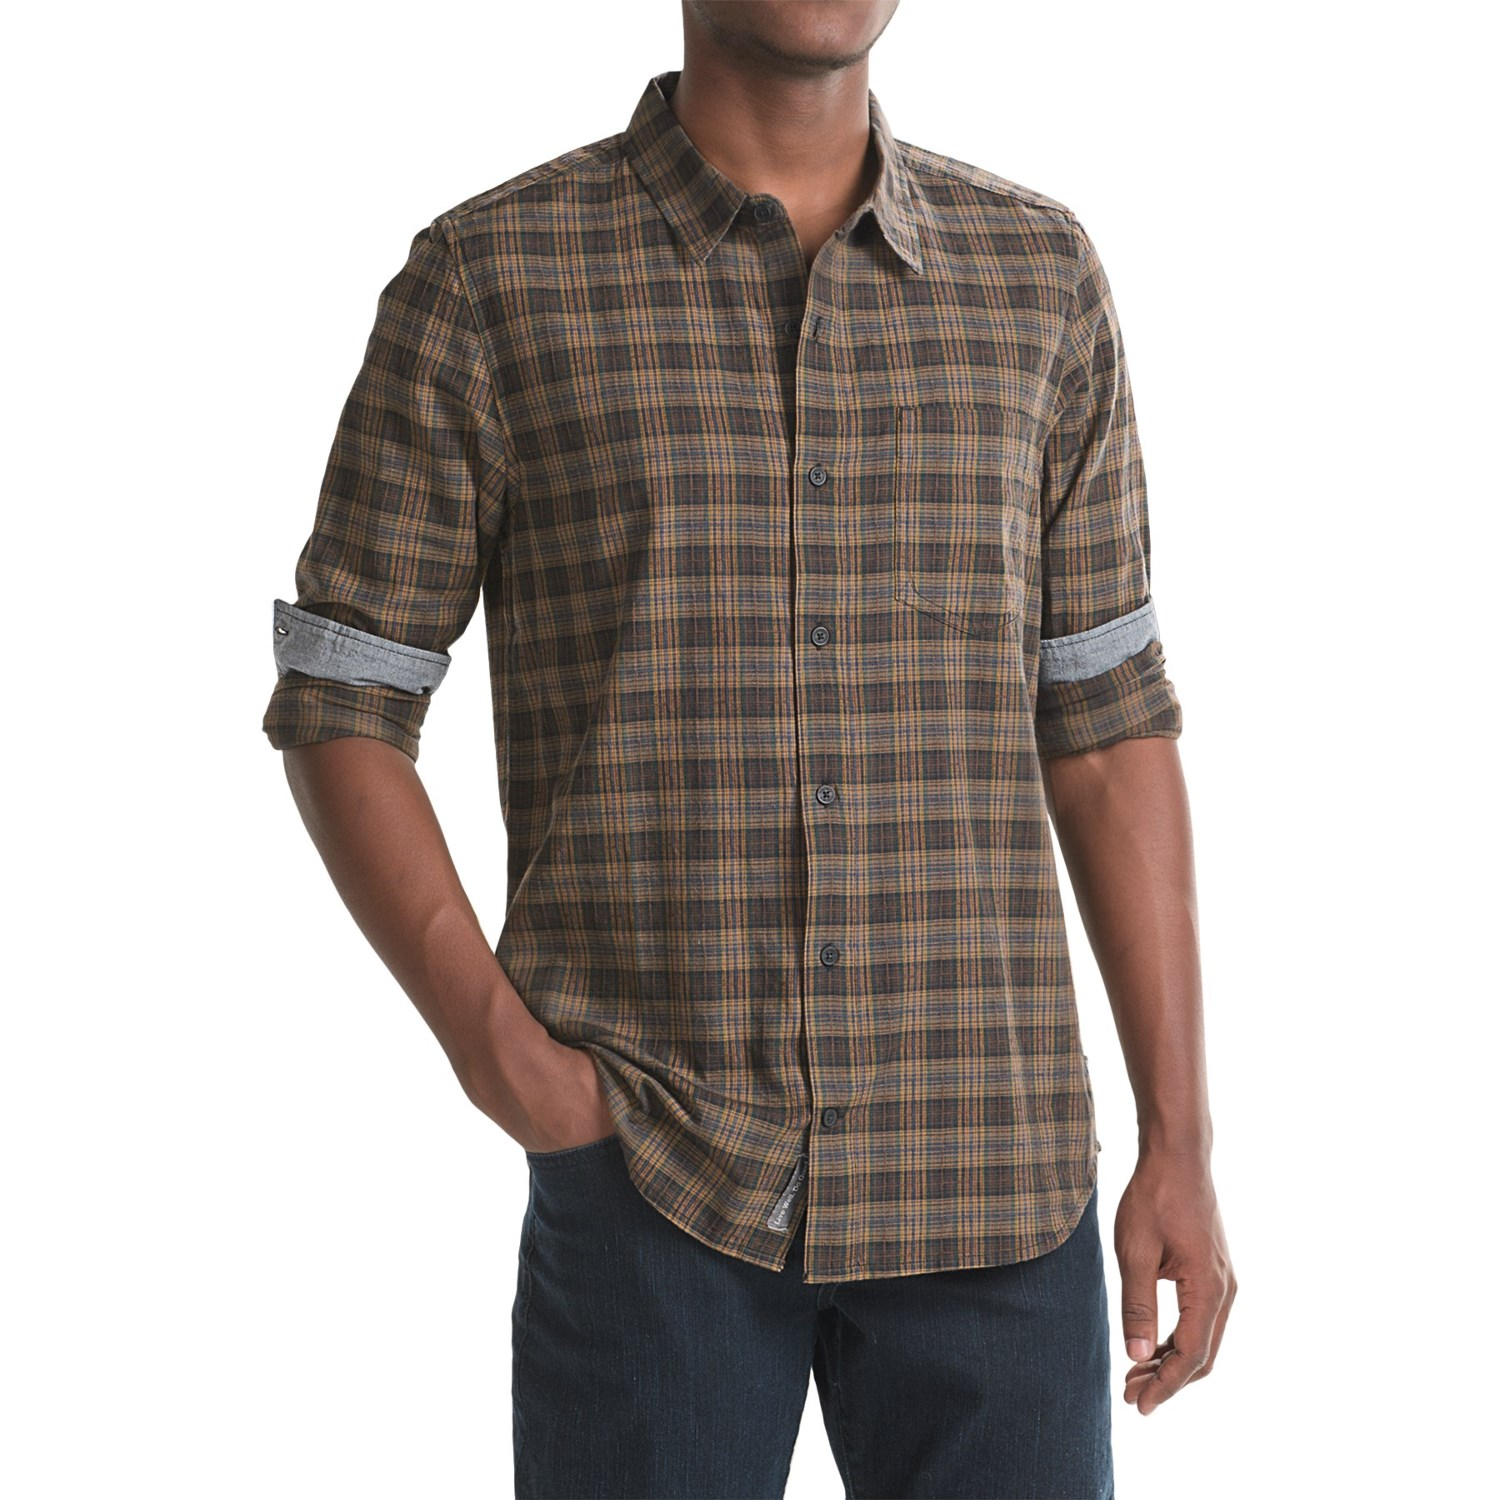 Toad co open air shirt for men save 49 for Long sleeve open shirt